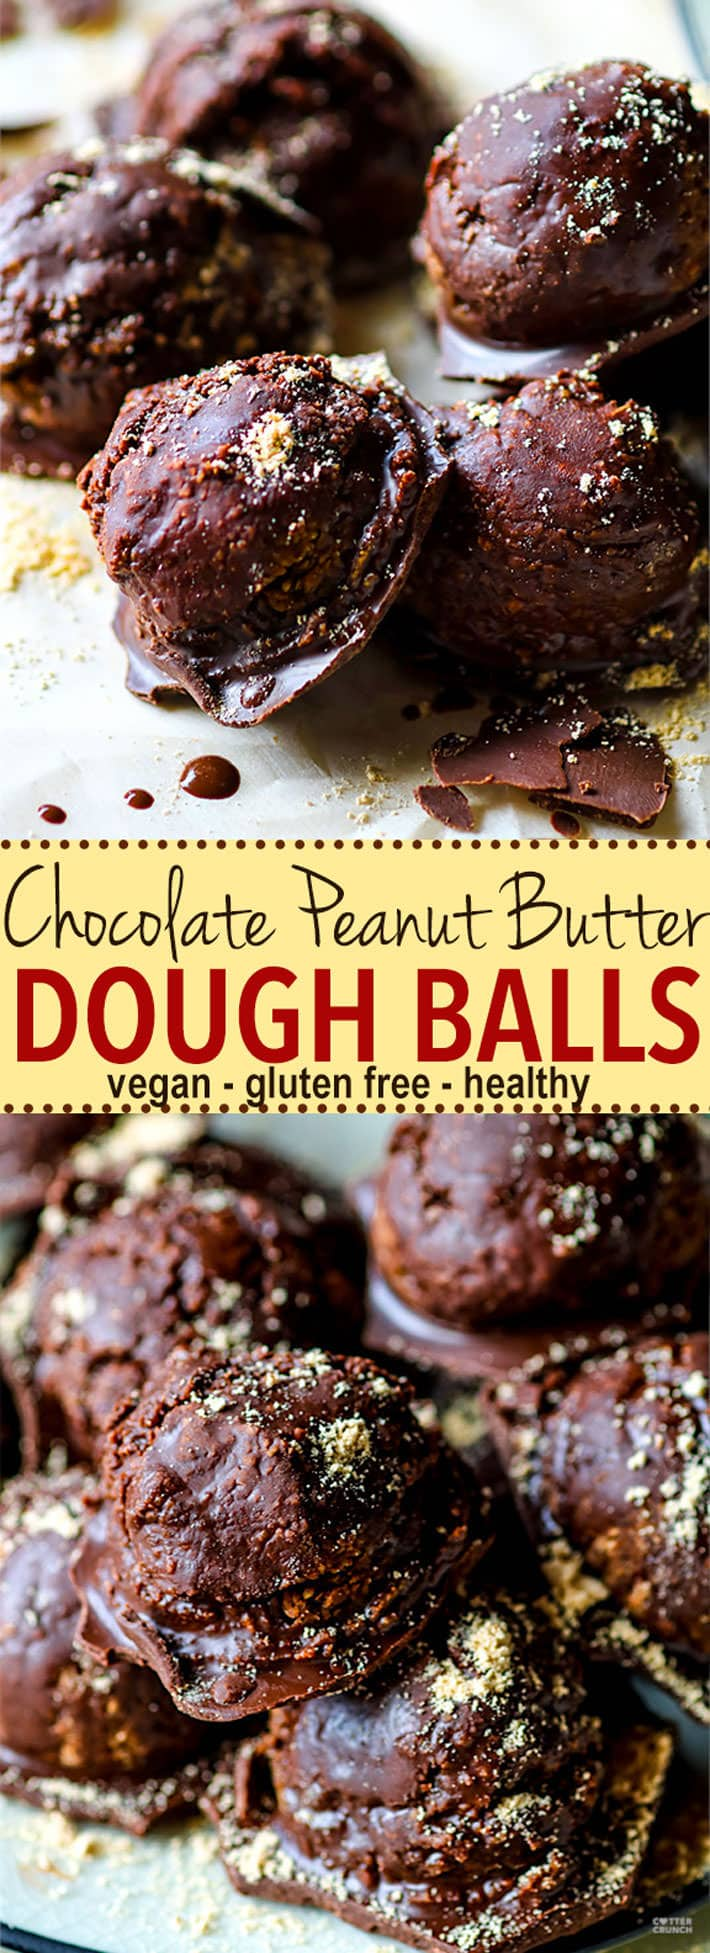 Chocolate Peanut Butter Dough Balls with Hidden Veggies